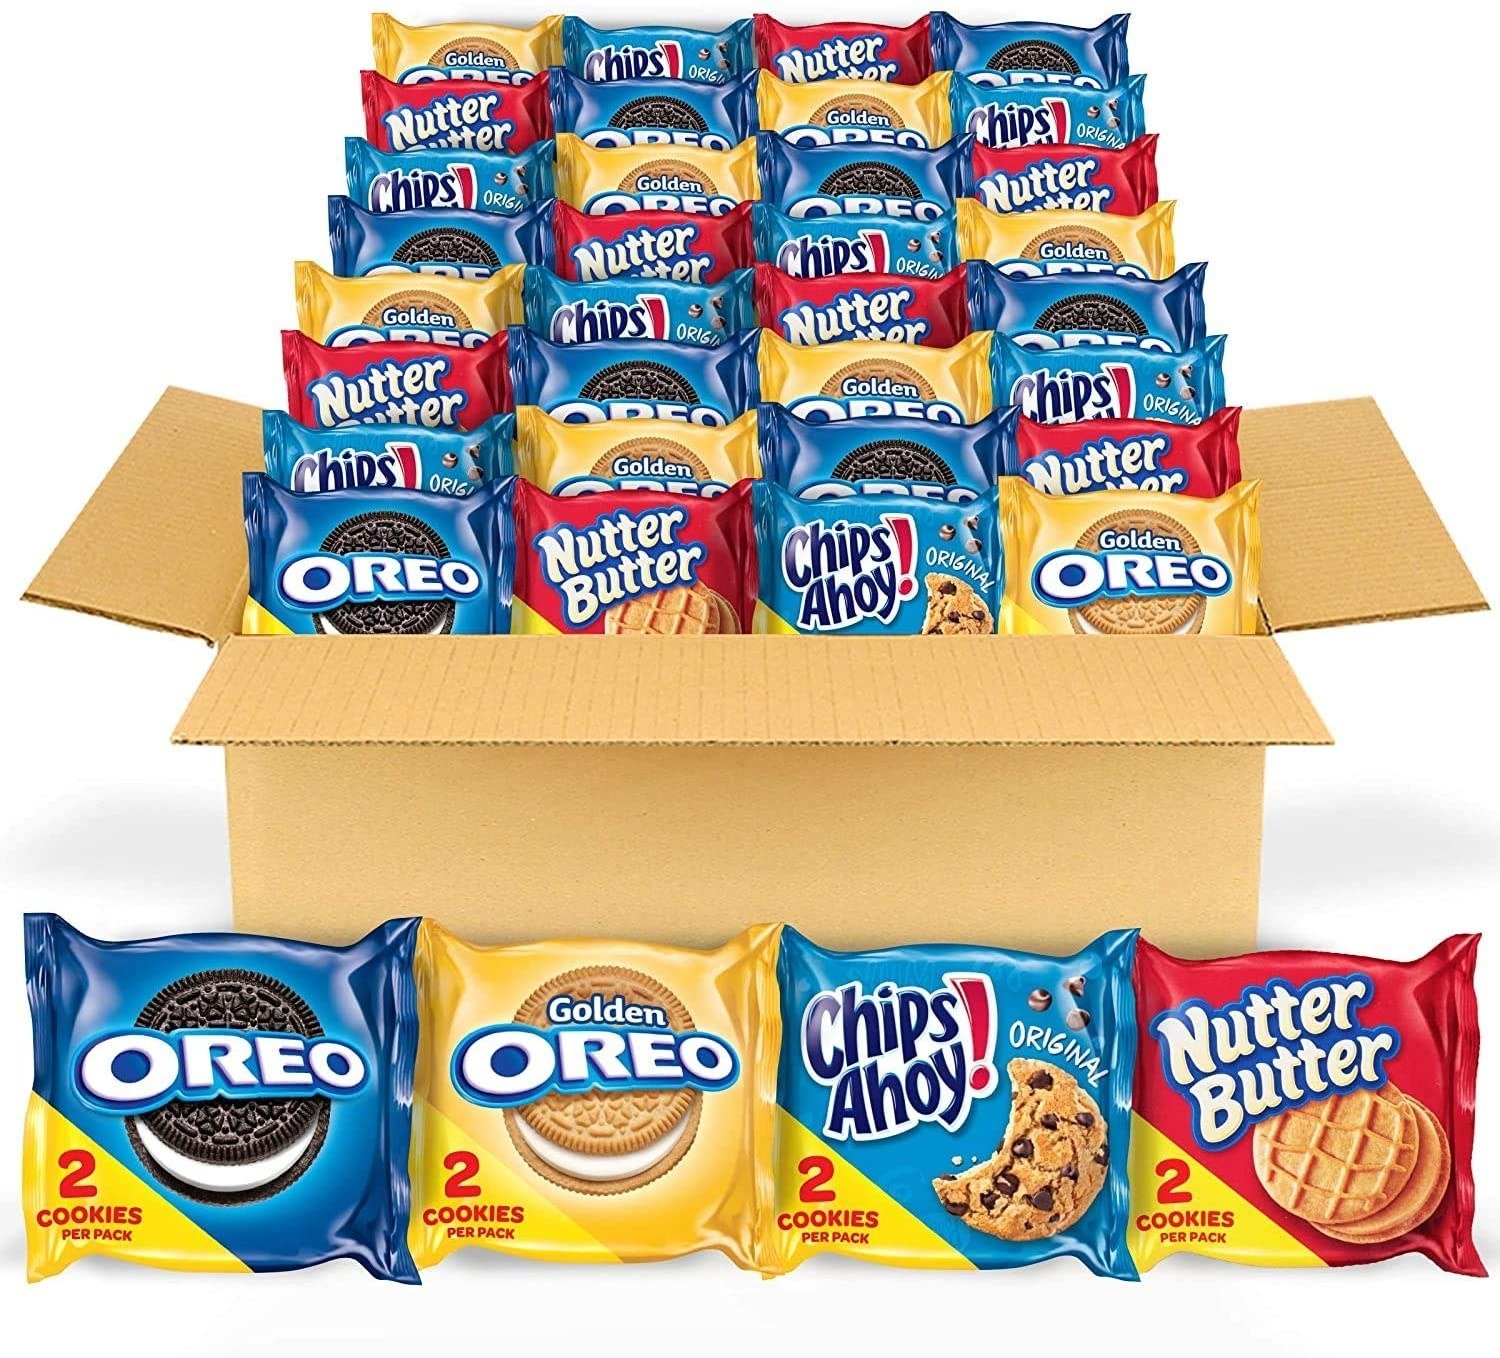 the box filled with oreos, golden oreos, chips ahoy, and nutter butter